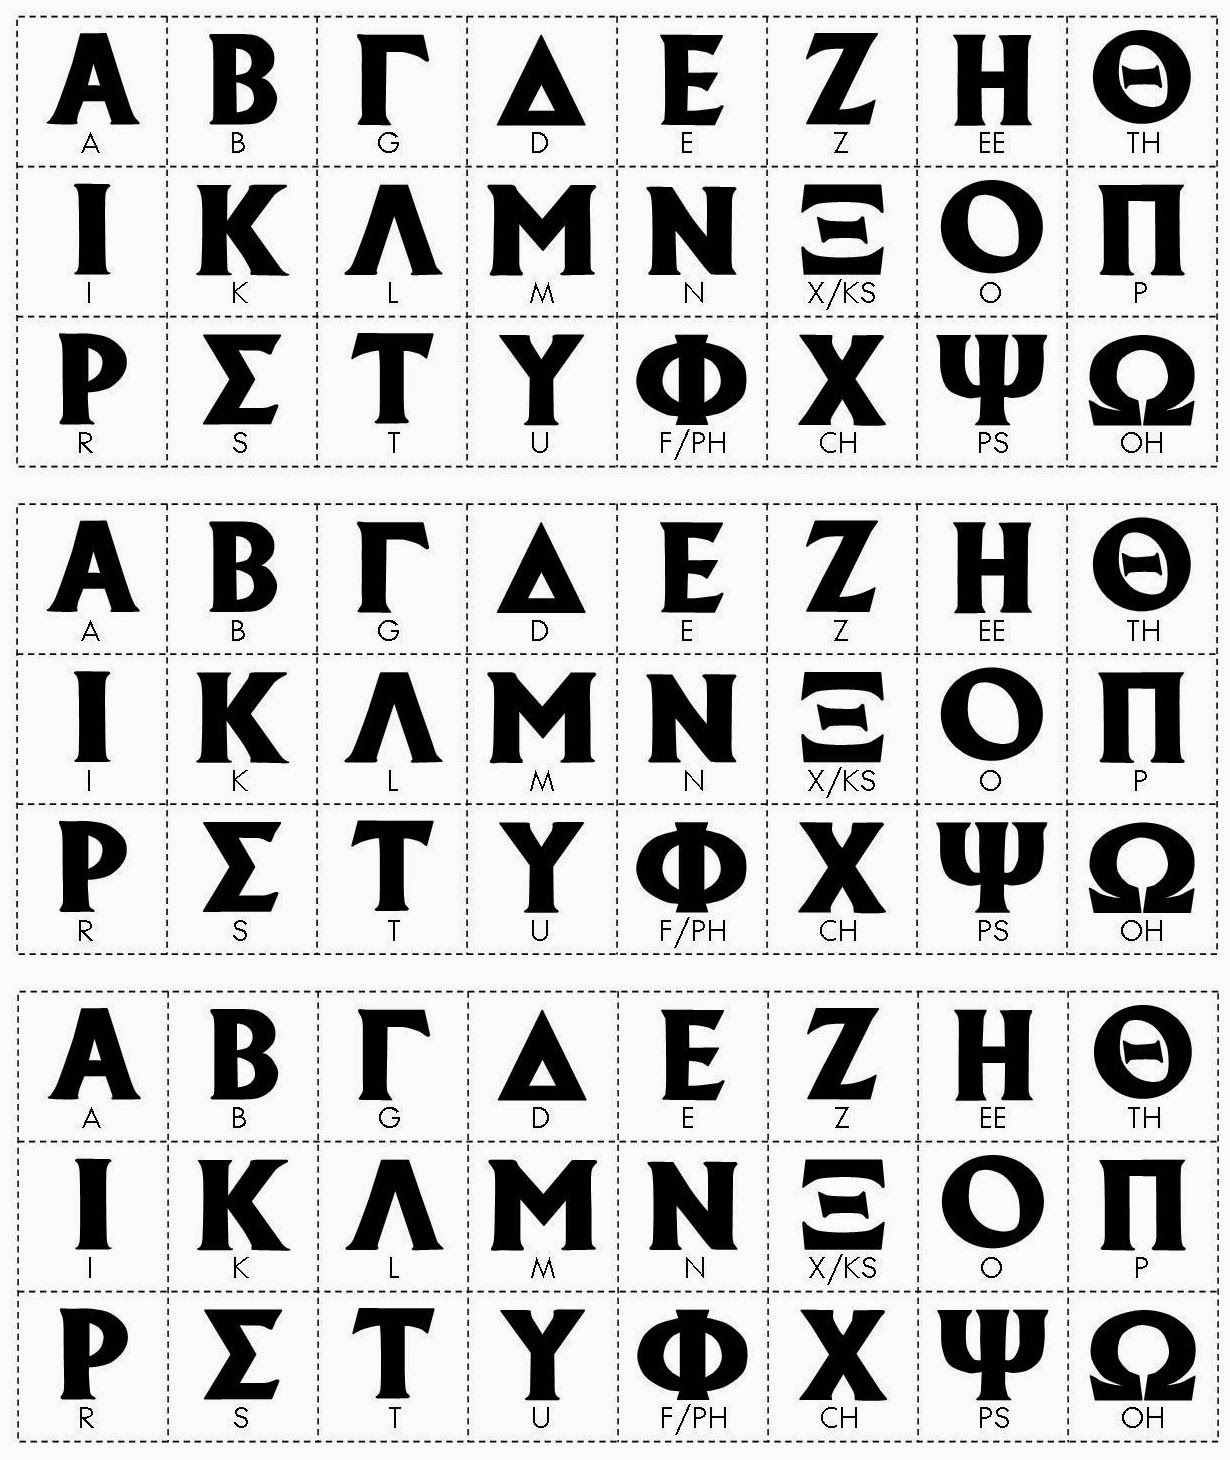 Reading Comprehension With The Greek Alphabet